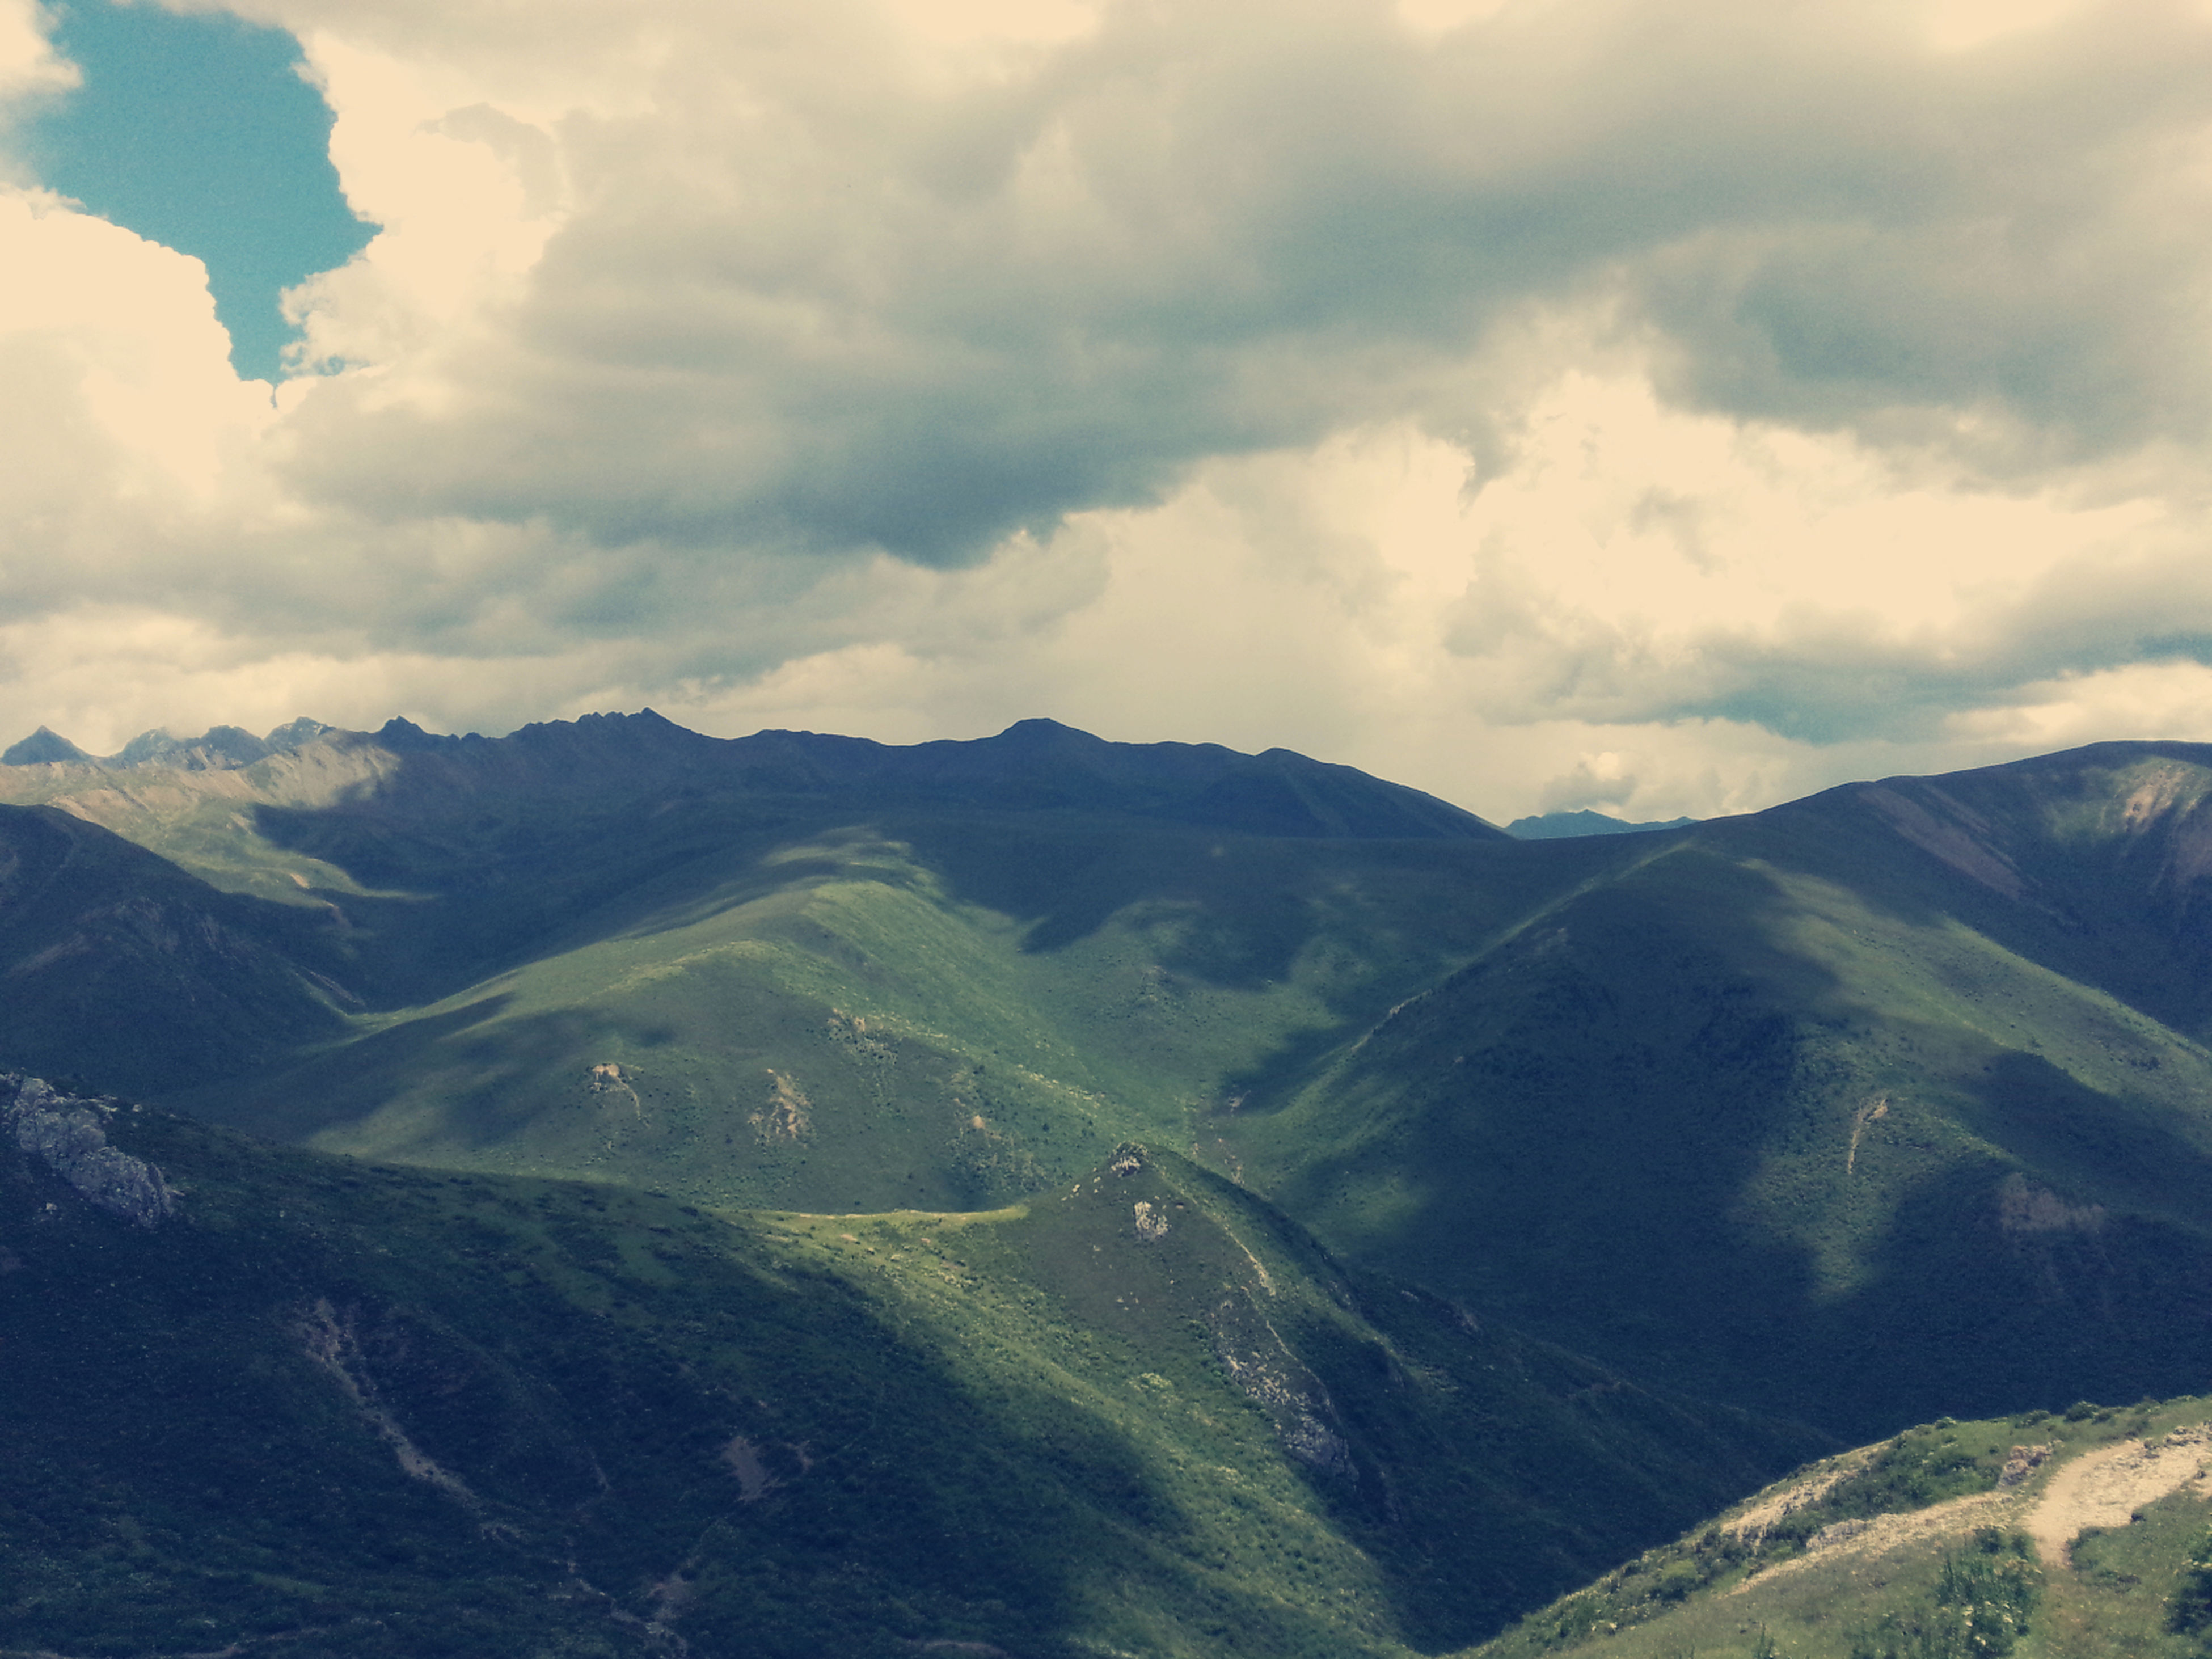 mountain, mountain range, scenics, tranquil scene, tranquility, sky, beauty in nature, cloud - sky, landscape, nature, cloudy, cloud, non-urban scene, idyllic, high angle view, day, remote, outdoors, valley, no people